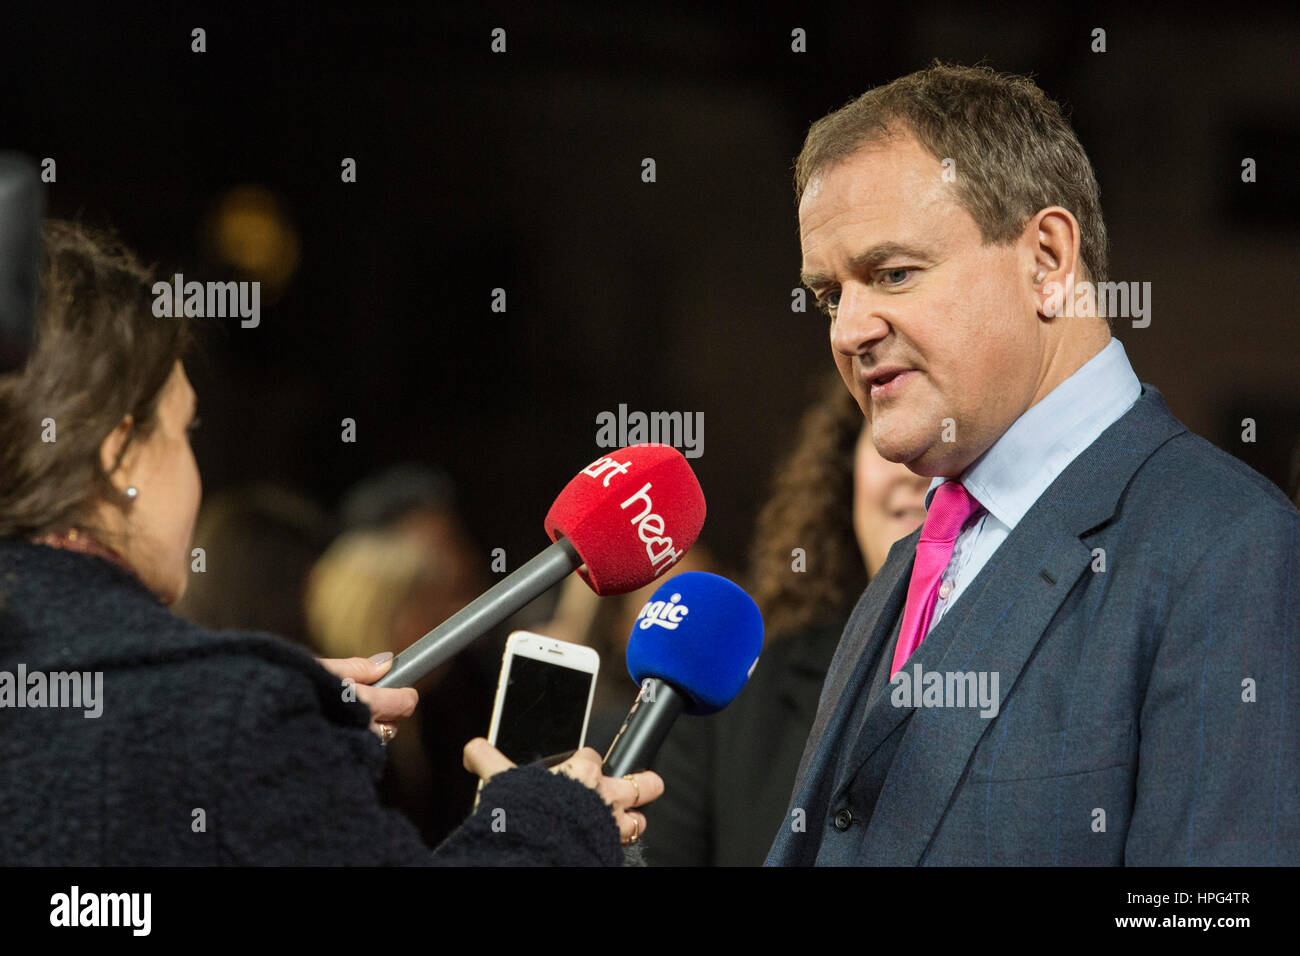 London, UK. 21 February 2017. Hugh Bonneville. Red carpet arrivals for the UK premiere of Viceroy's House at - Stock Image